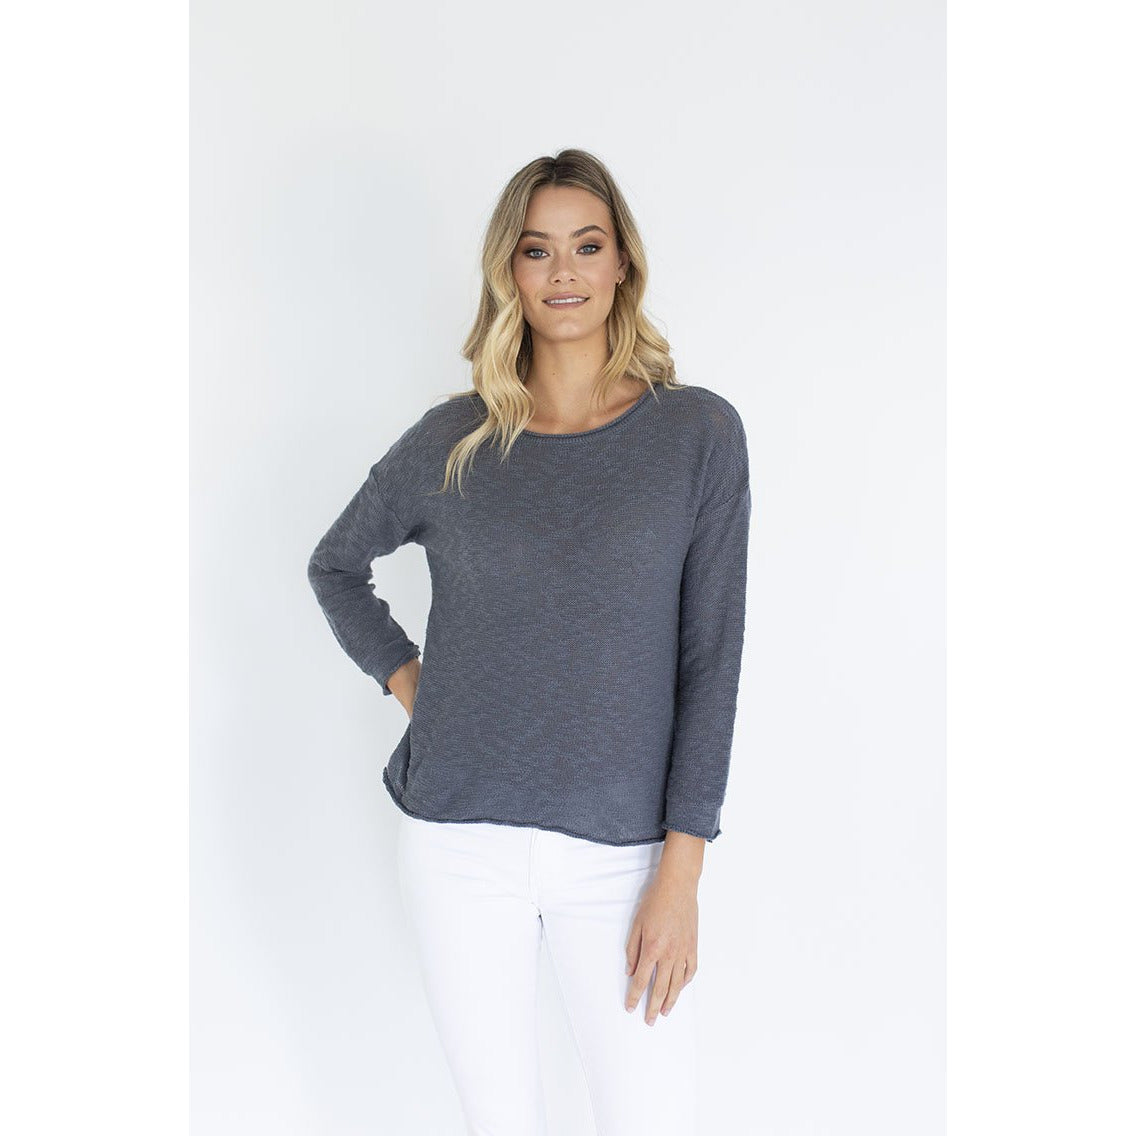 Humidity Sophia Sweater in Graphite Grey